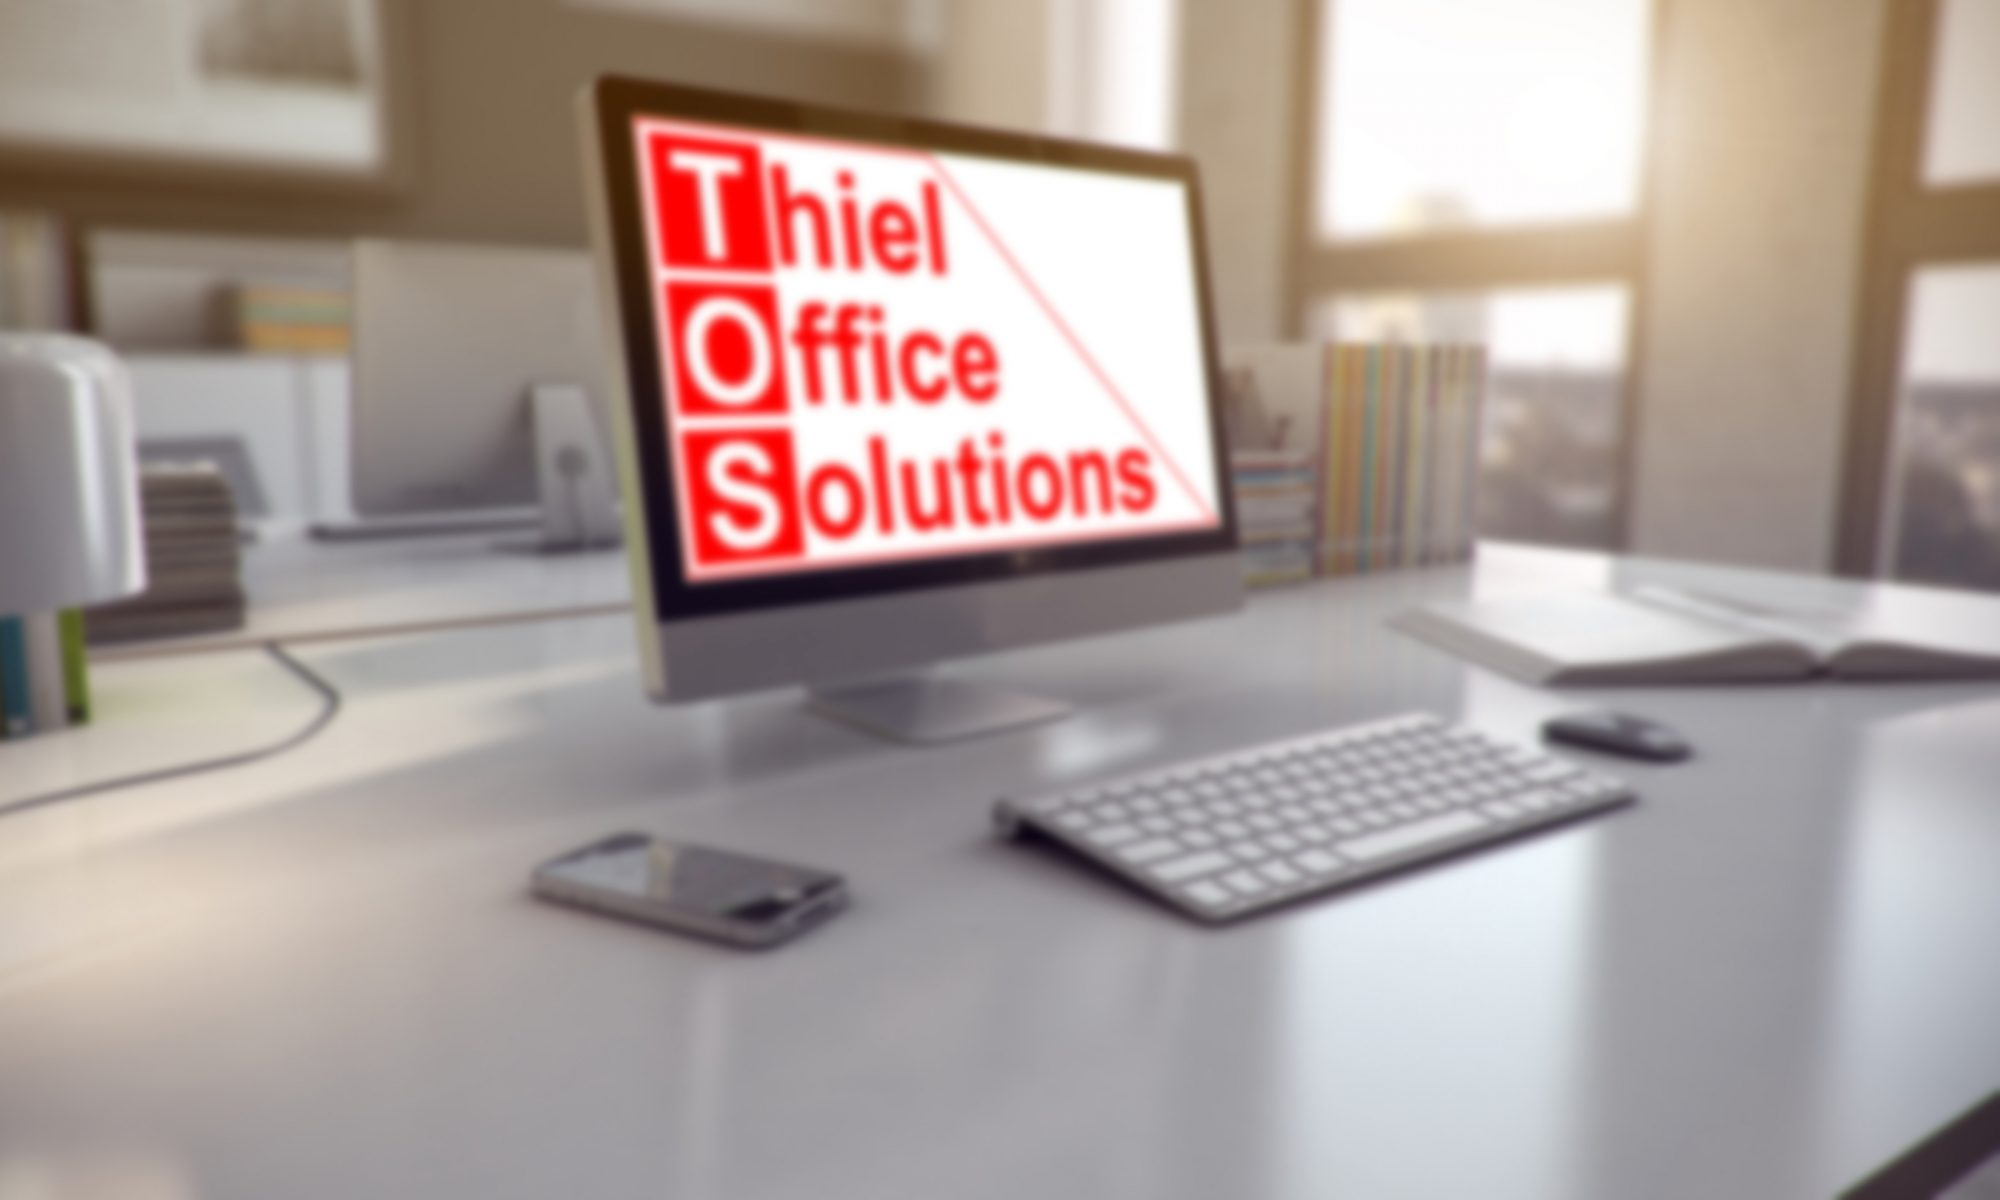 Thiel GbR - Thiel Office Solutions